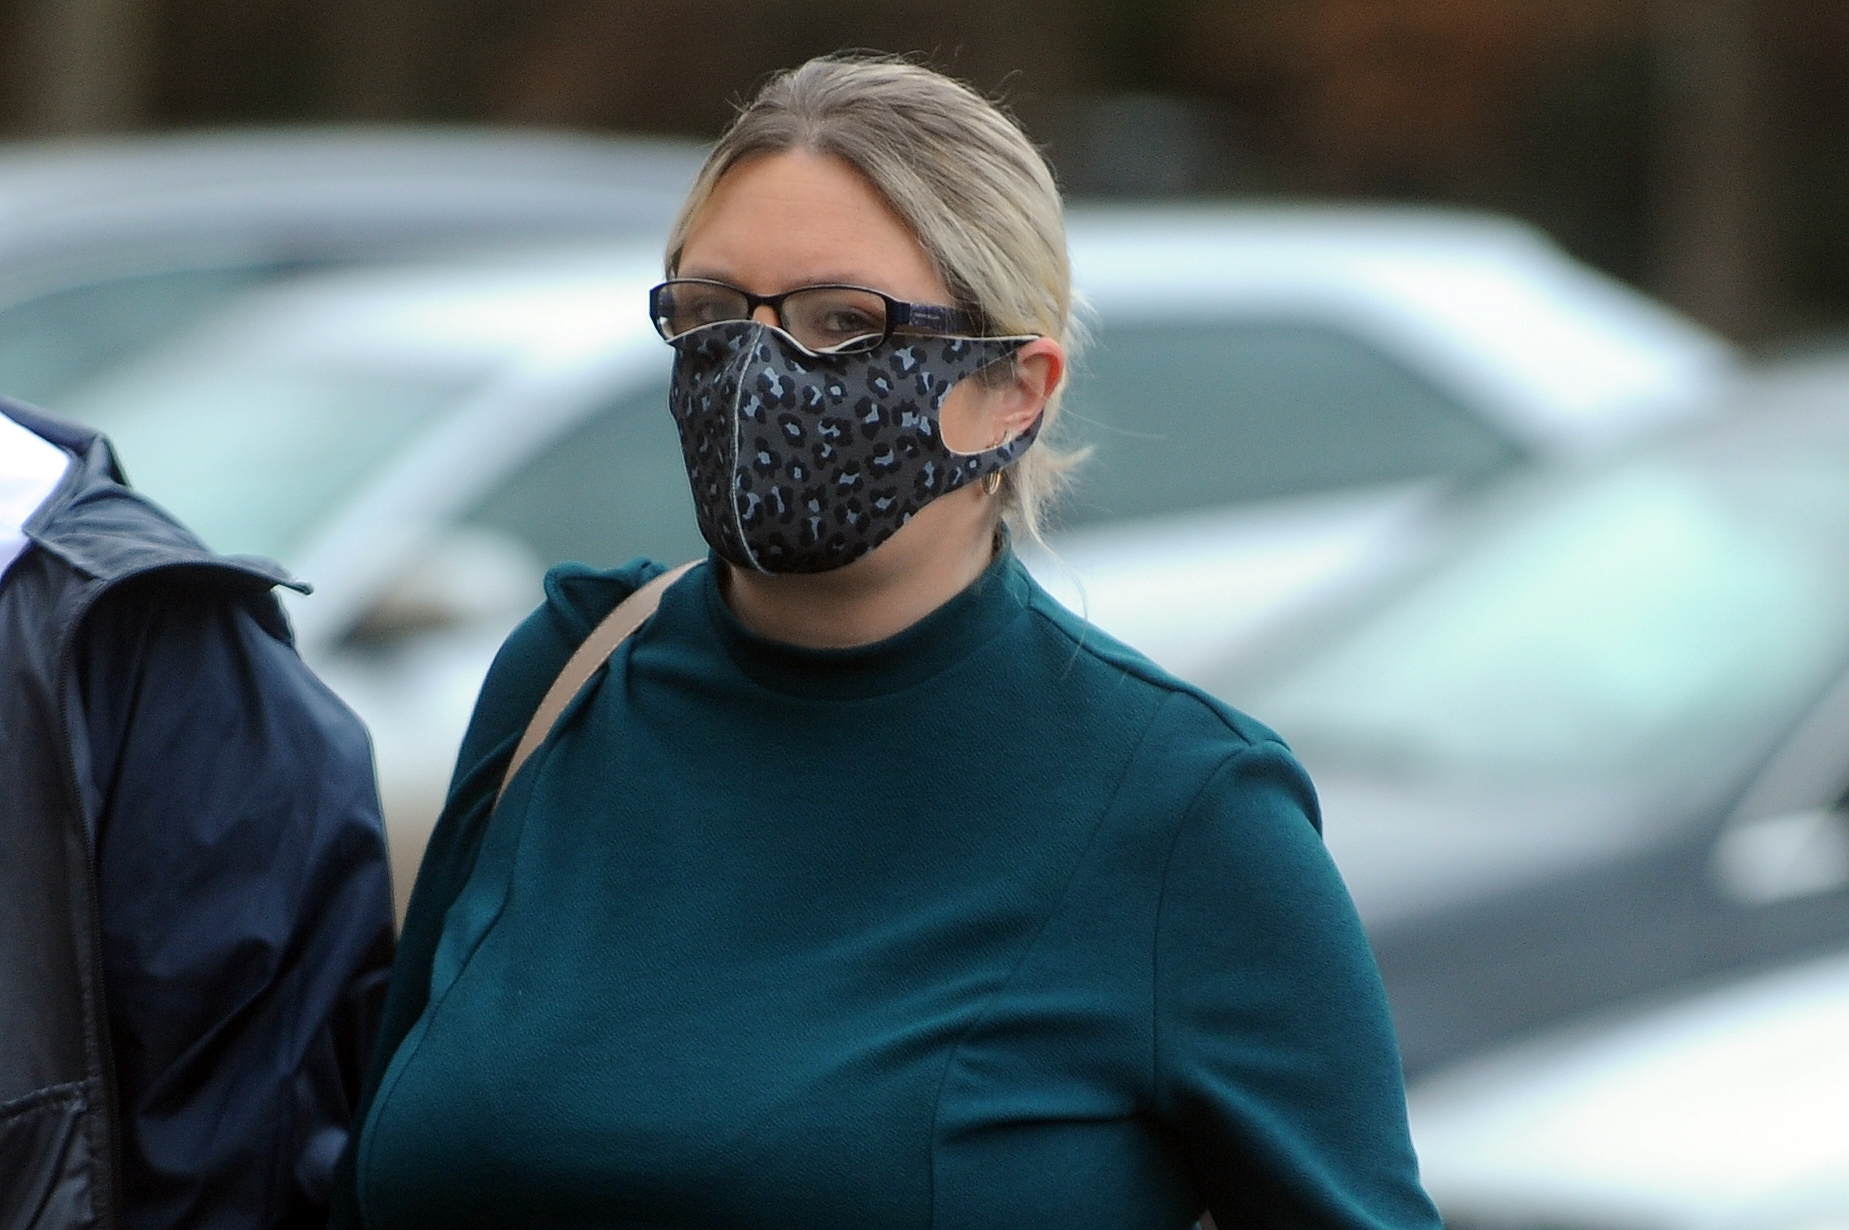 Finance boss to pay back just £2k after being jailed over £825k fraud